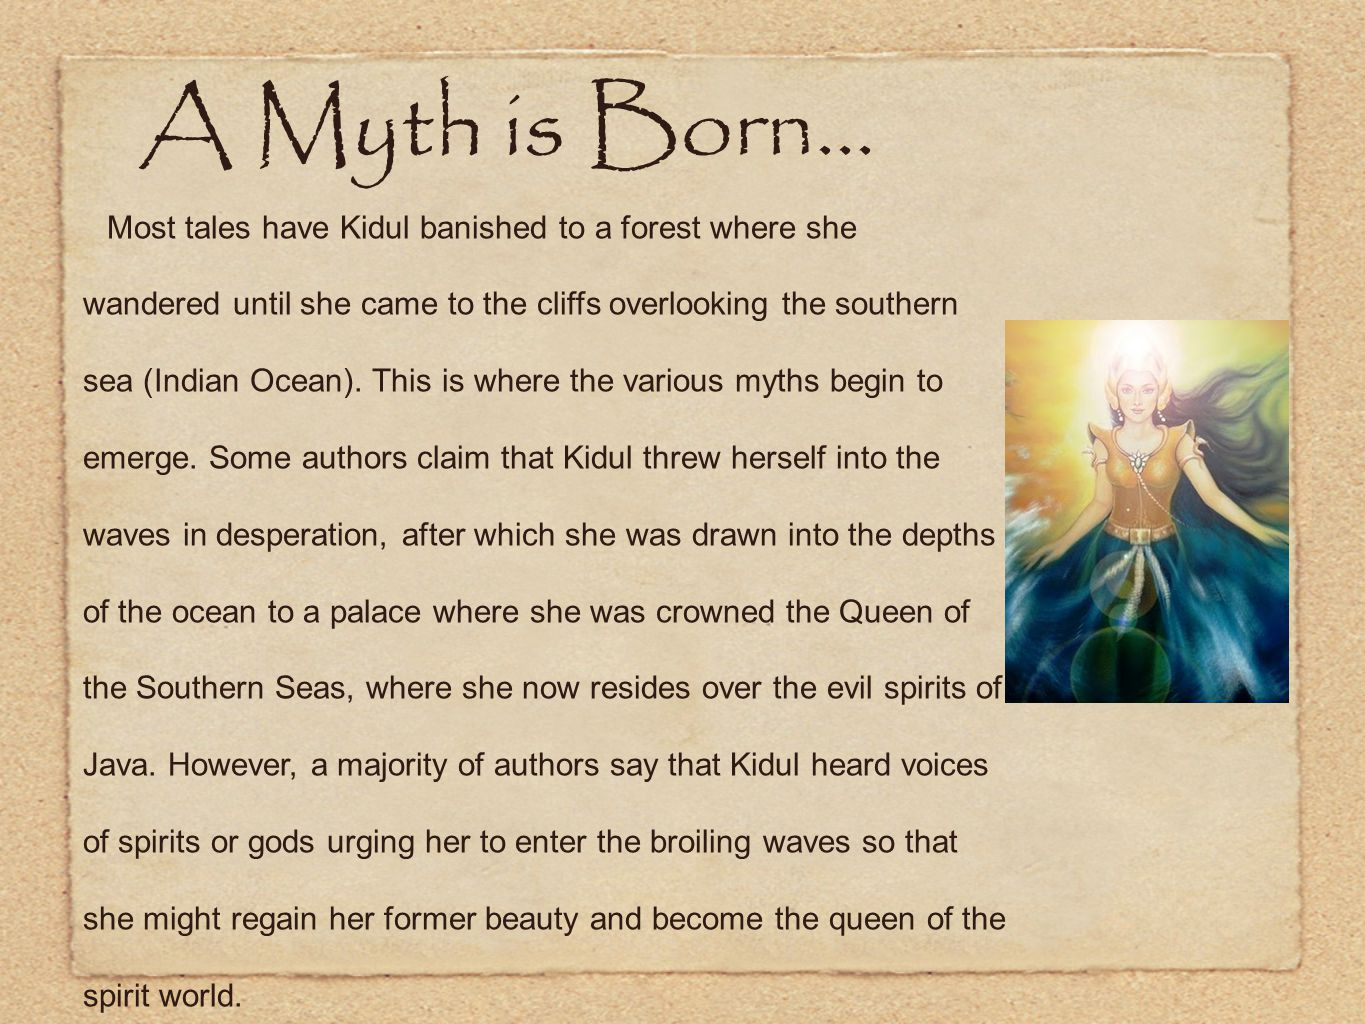 A Myth is Born...